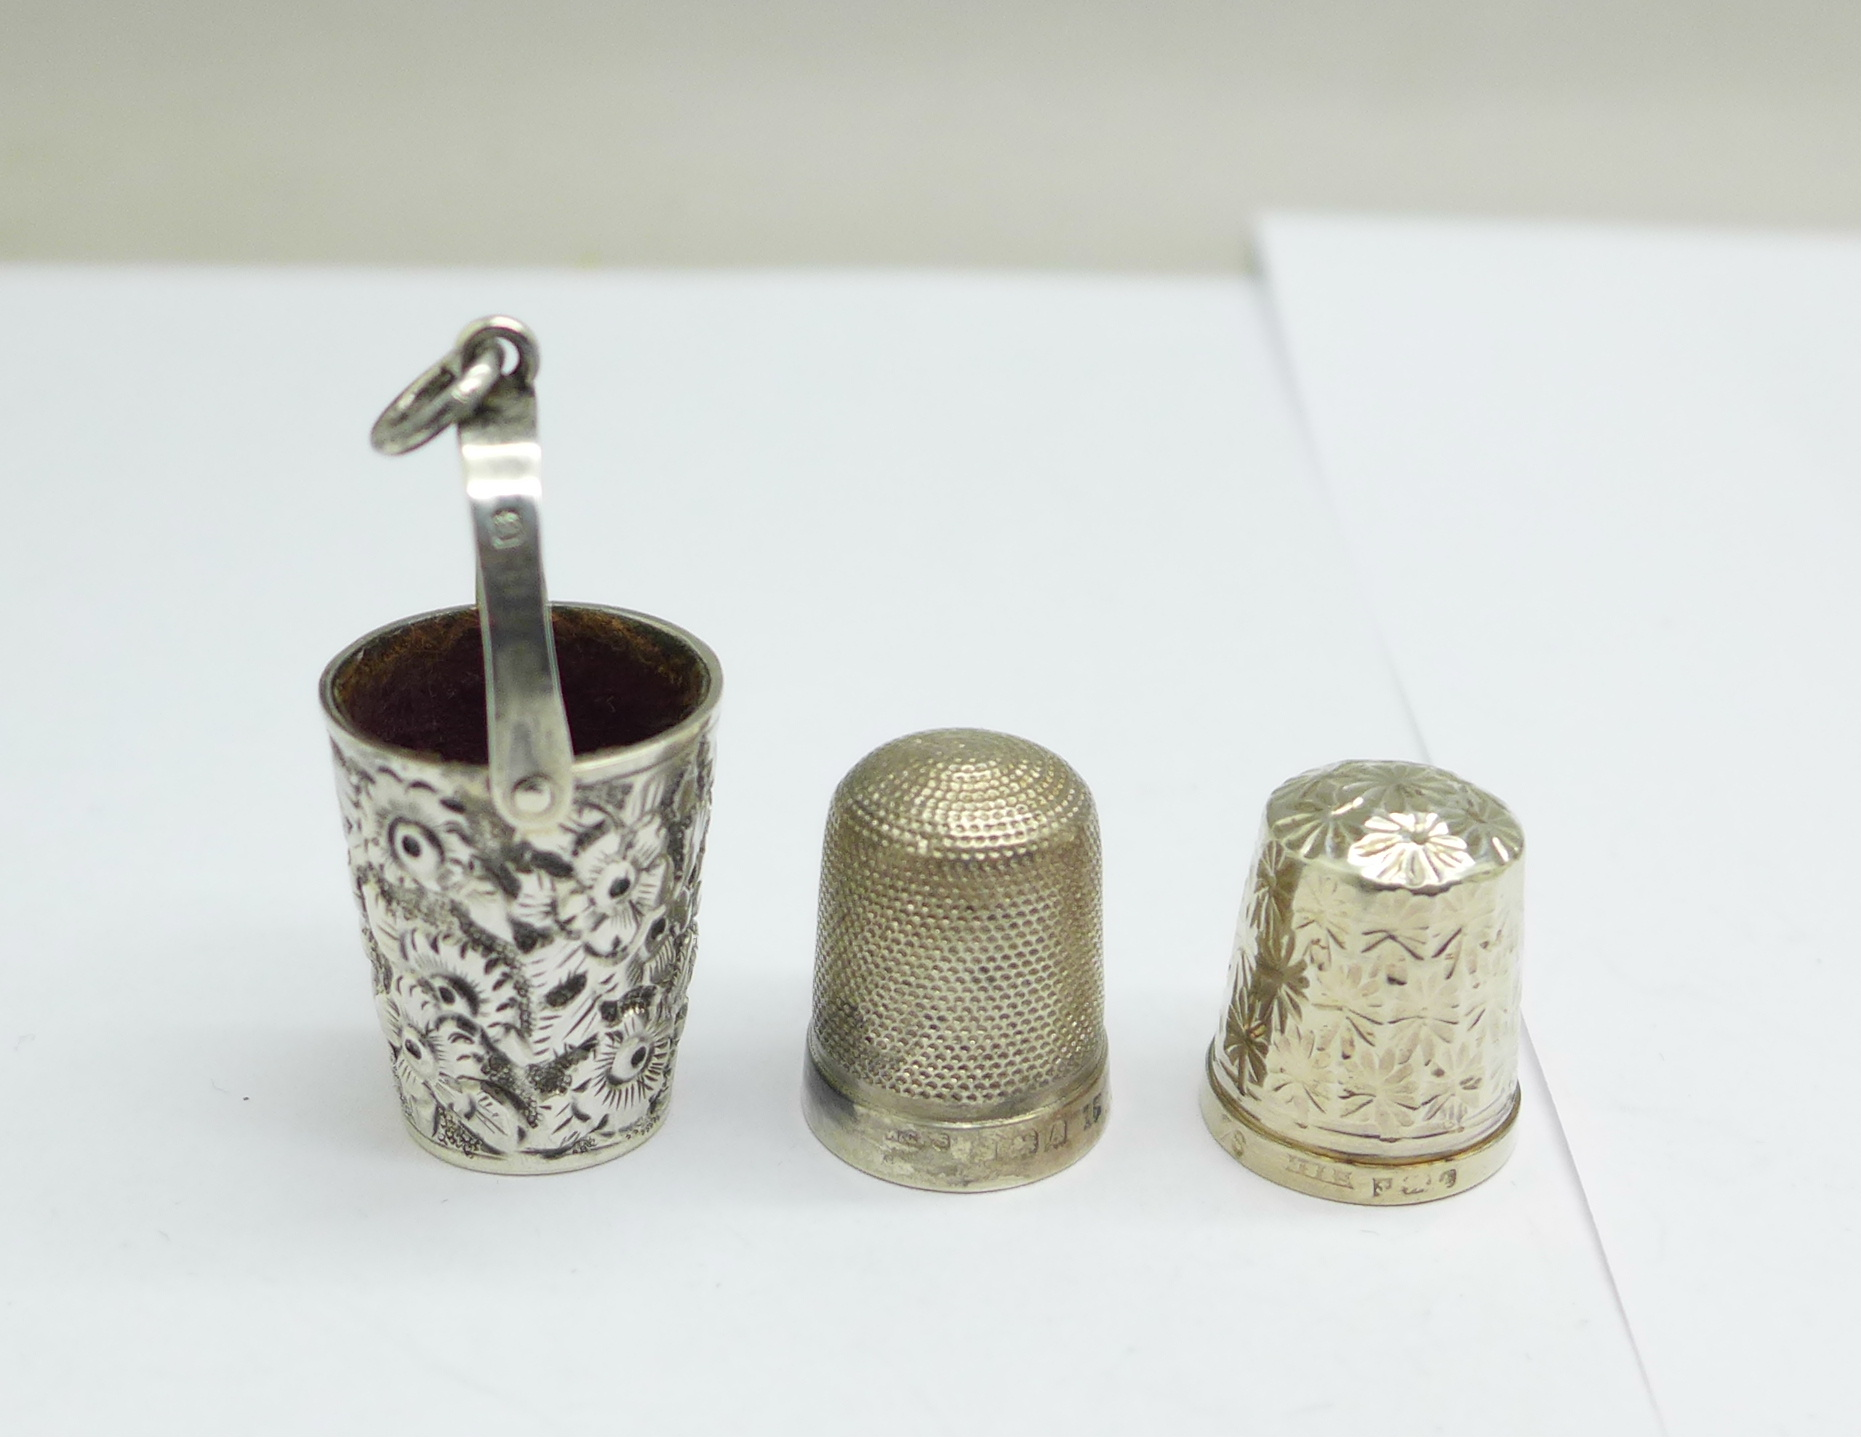 A Victorian silver thimble holder for a chatelaine in the form of a miniature bucket, by George